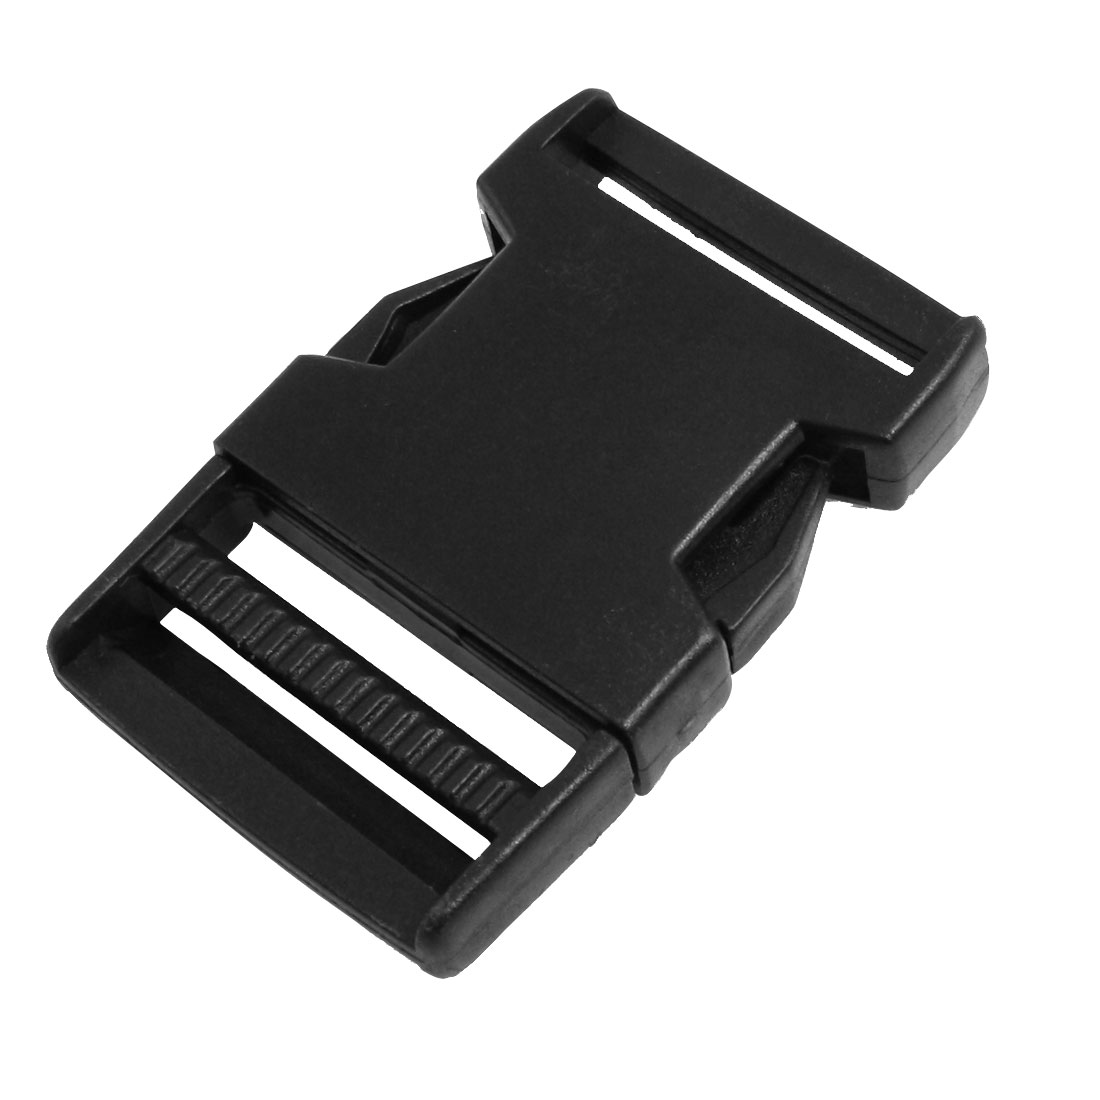 "Luggage Strap 1 1/2"" Repair Parts Side Quick Release Buckle Black"